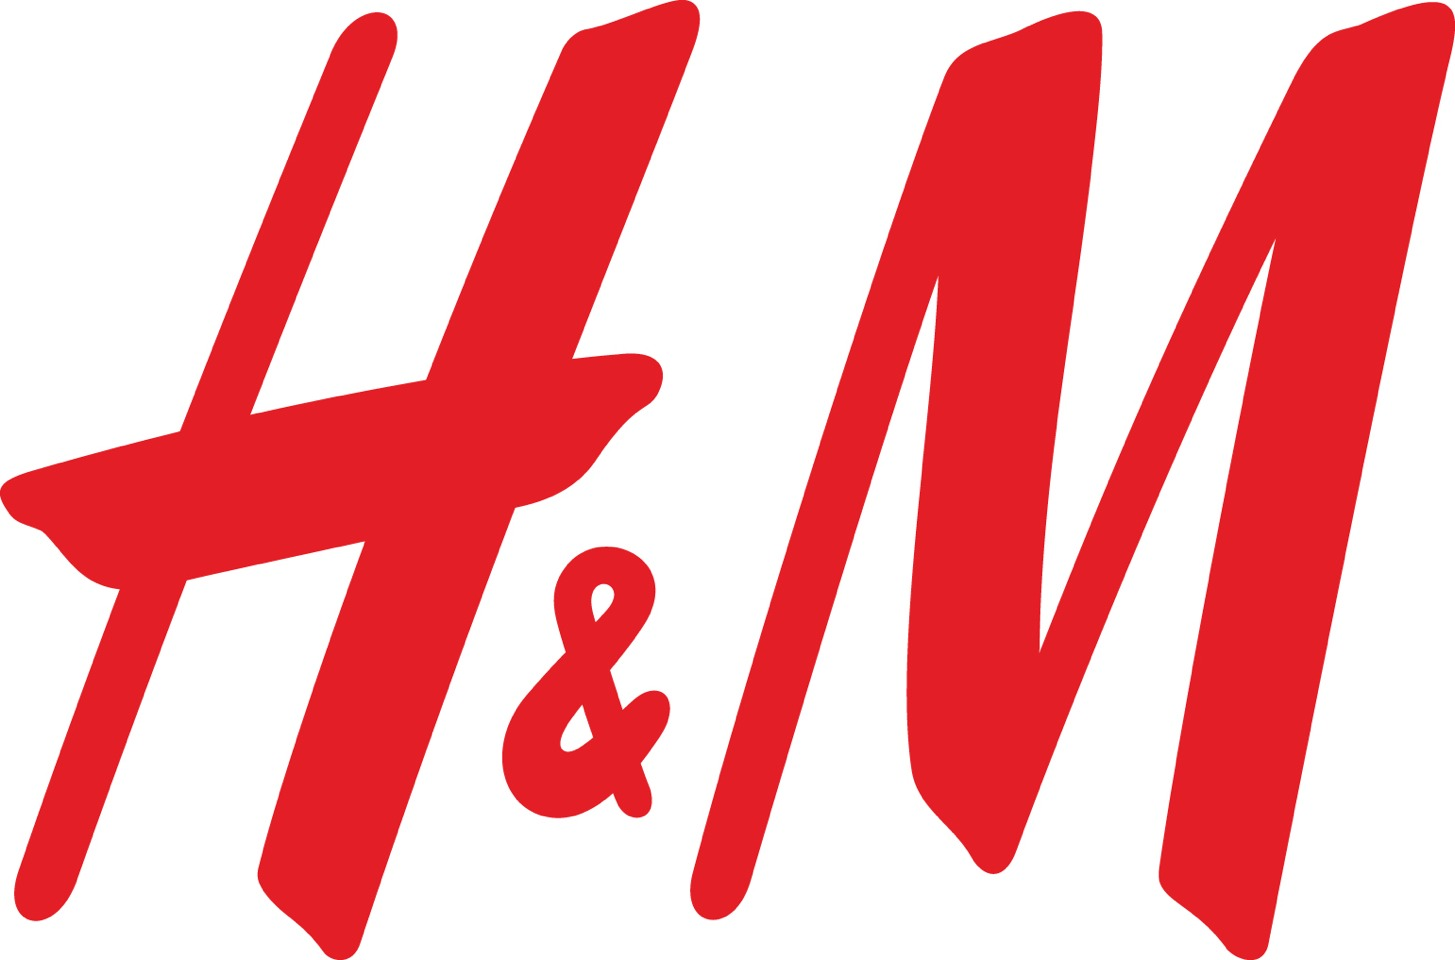 H&M - Because you can get clothes for all ages and patterns